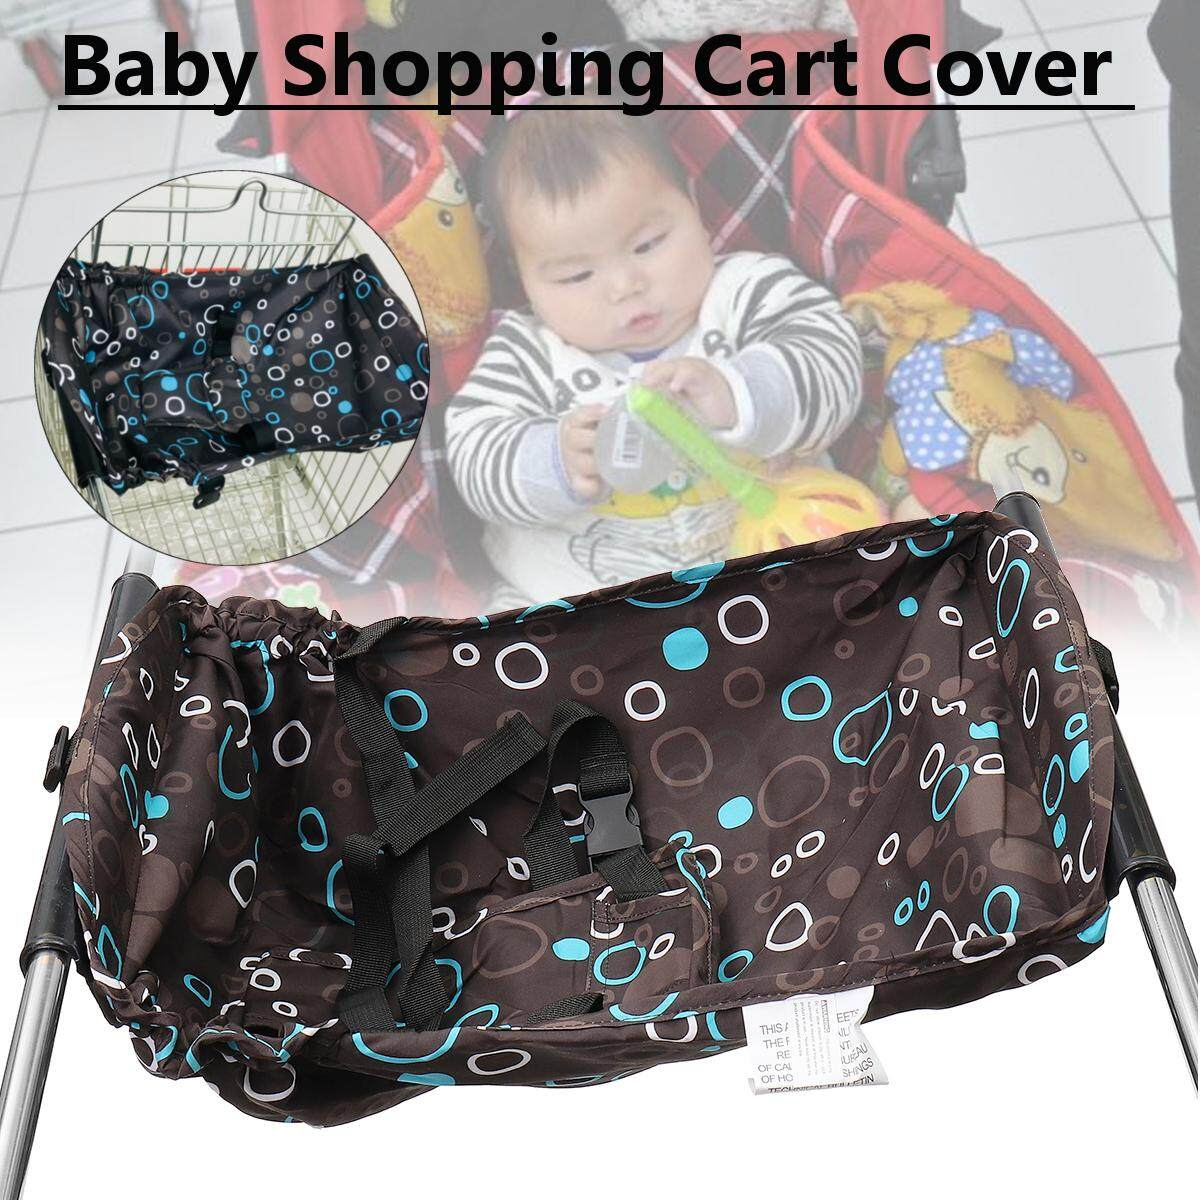 Soft Comfortable Baby Shopping Cart Cover Portable High Dining Chair Seat Pad Dd By Audew.